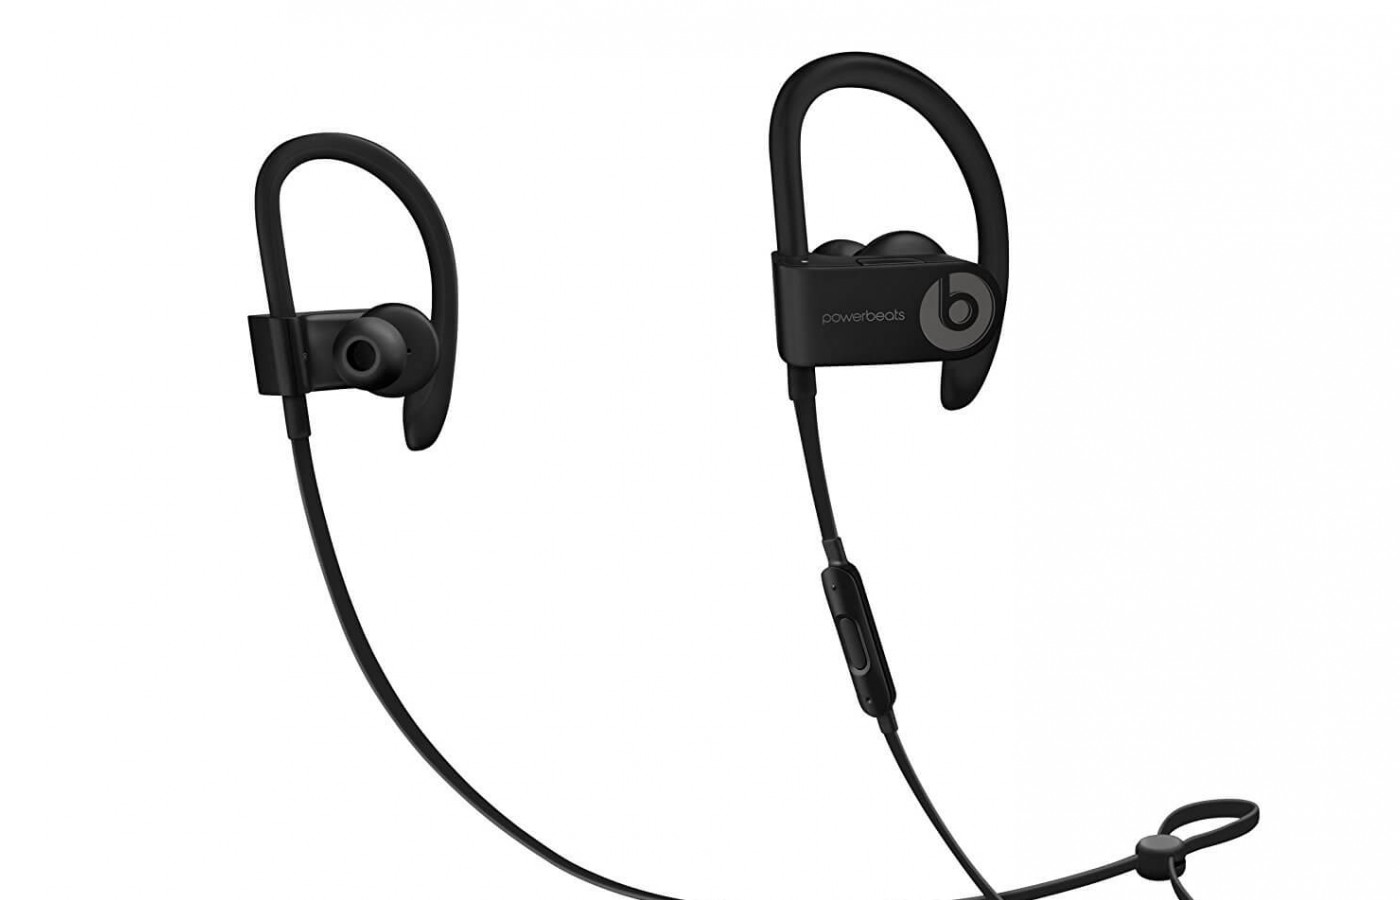 A full-size view of the Powerbeats 3.